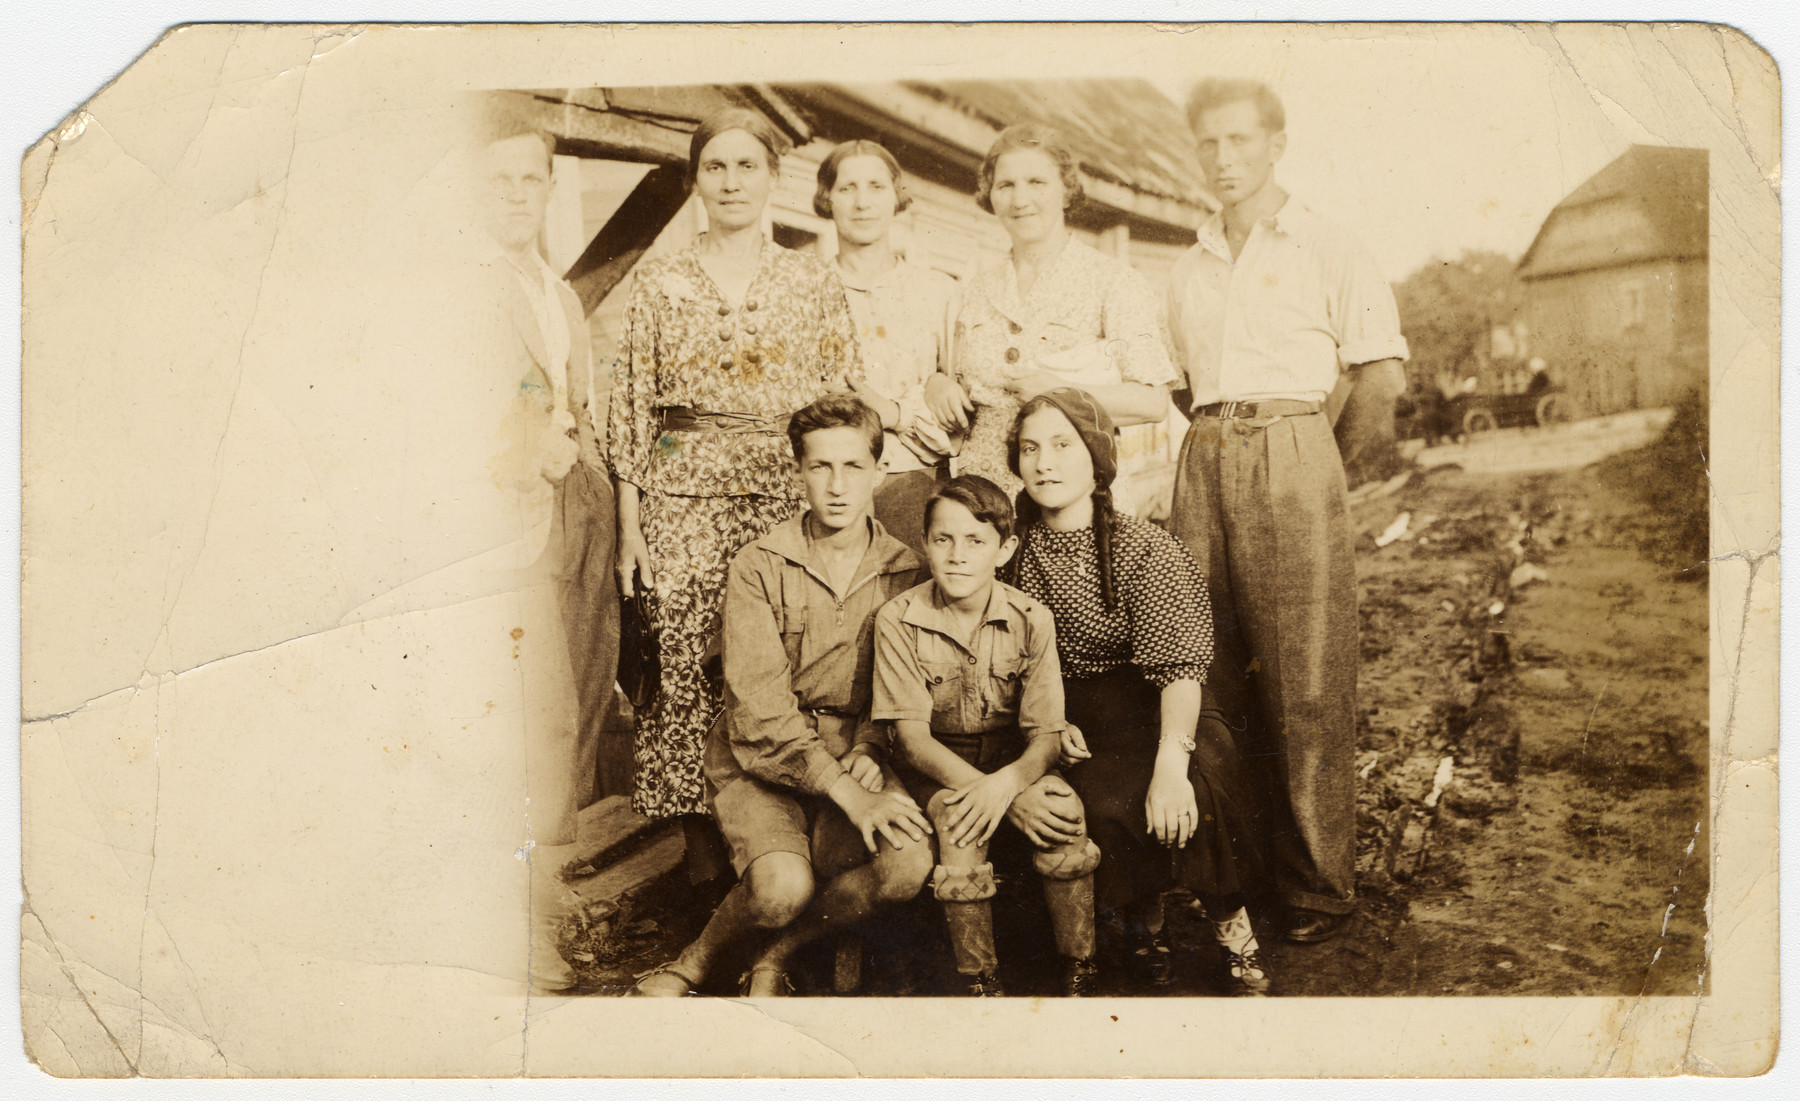 Prewar photograph of the Bielski family on their farm.